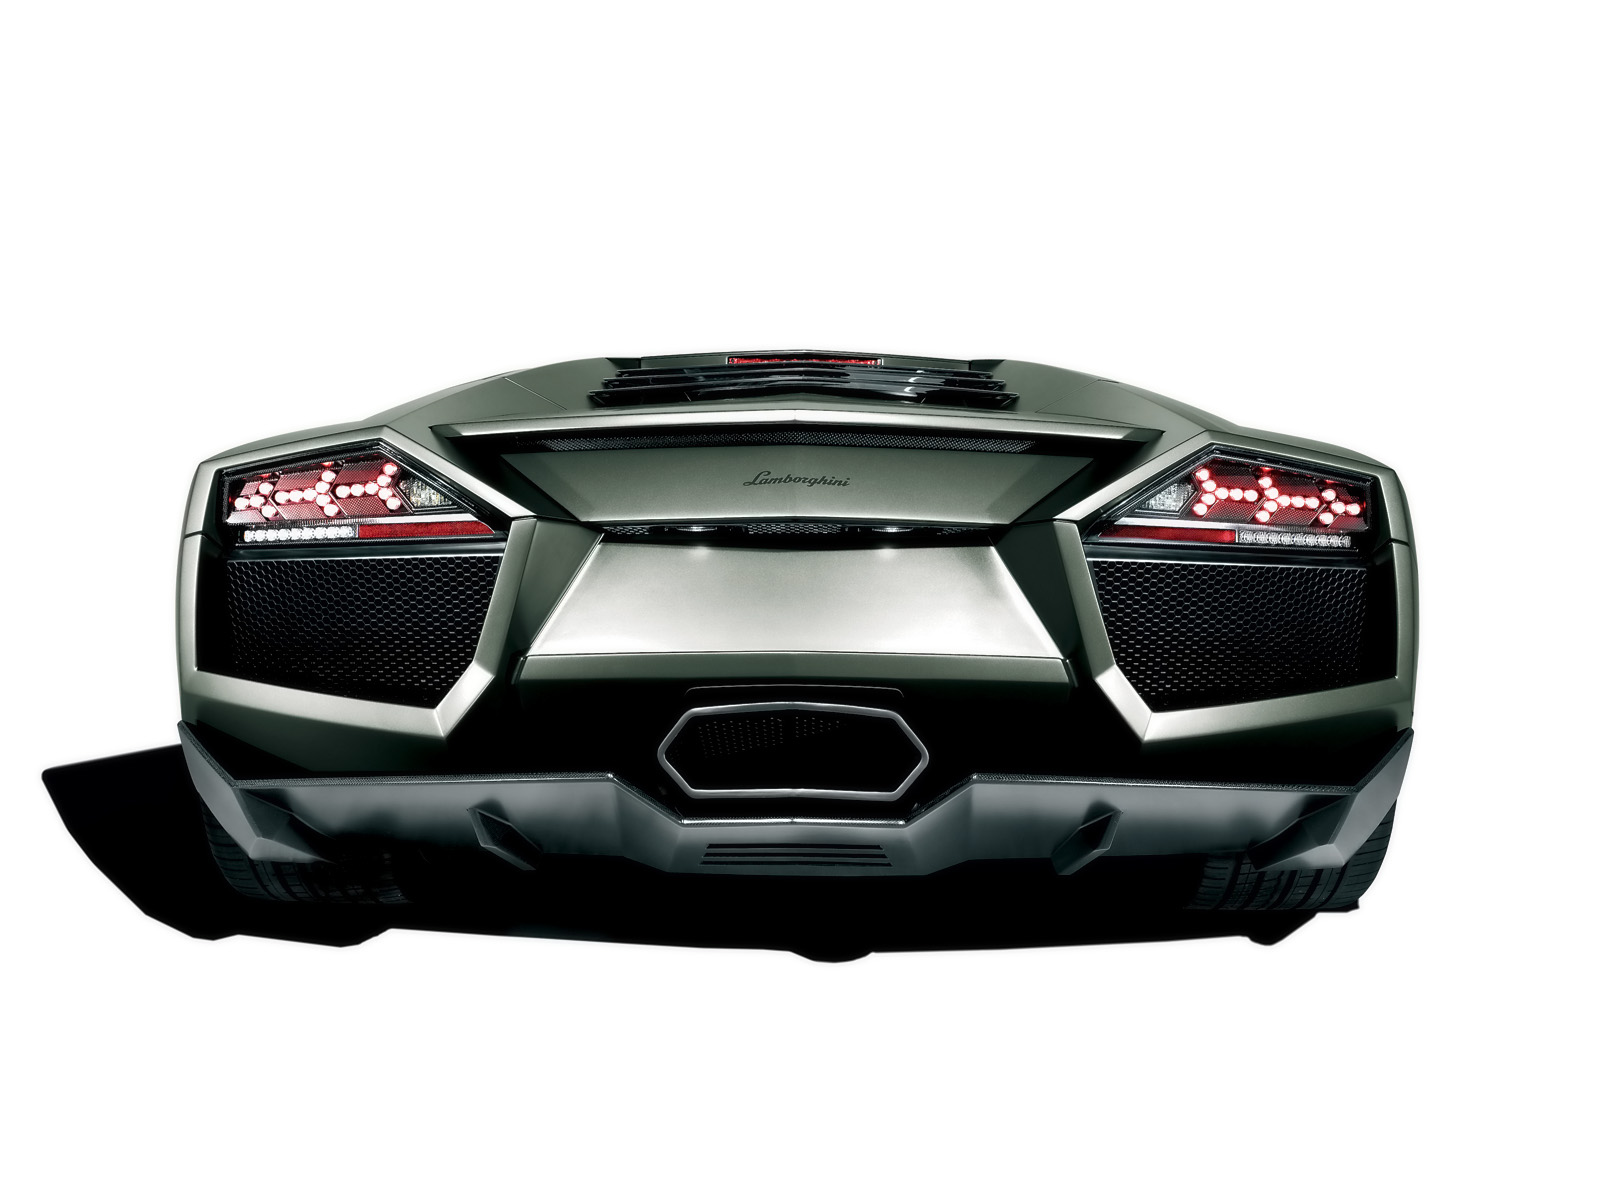 Lamborghini Reventon Rear Wallpaper 1600x1200 17245